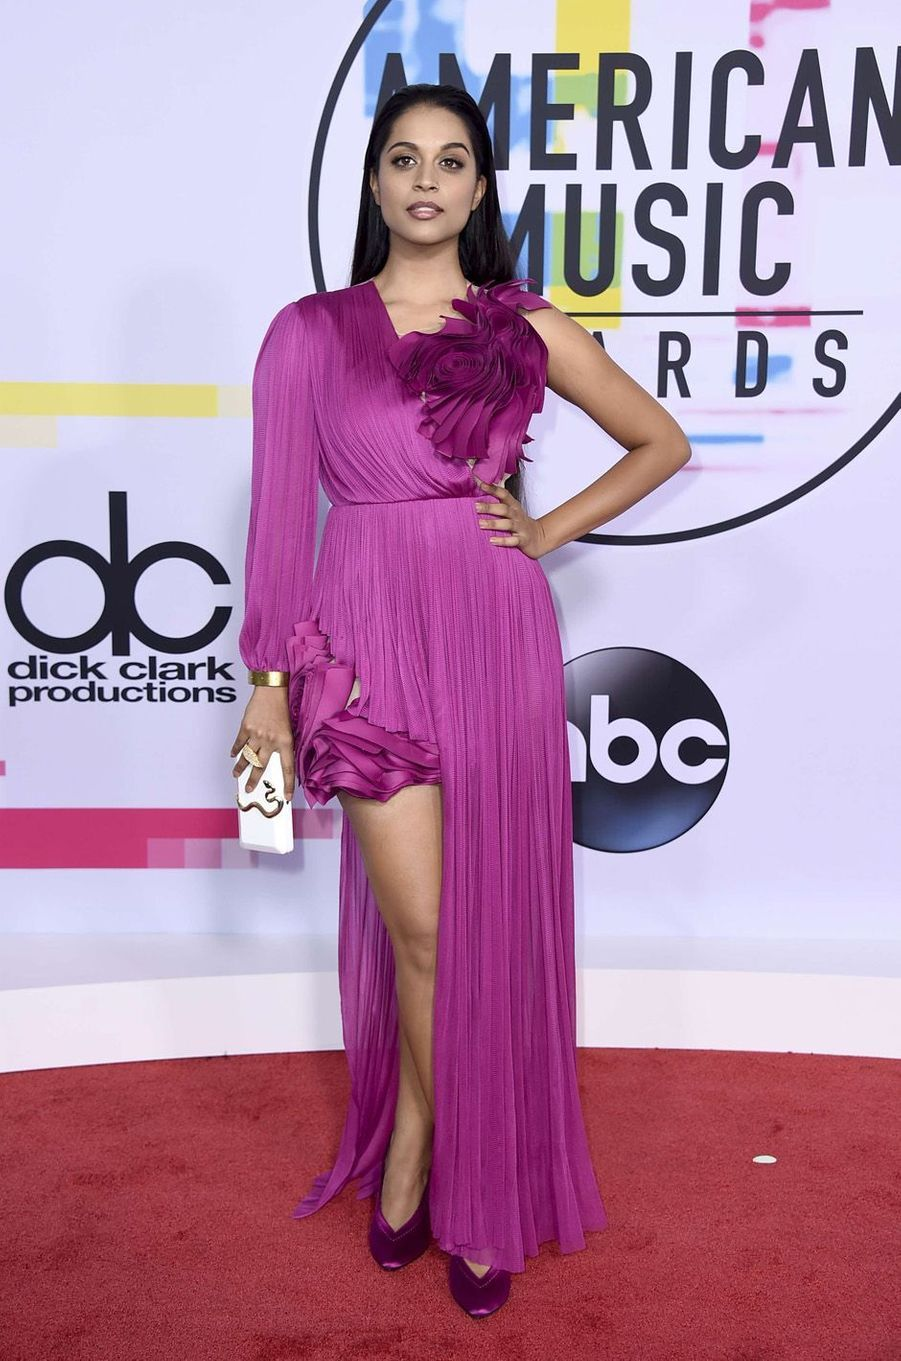 Lilly Singh aux American Music Awards, le 19 novembre 2017 à Los Angeles.